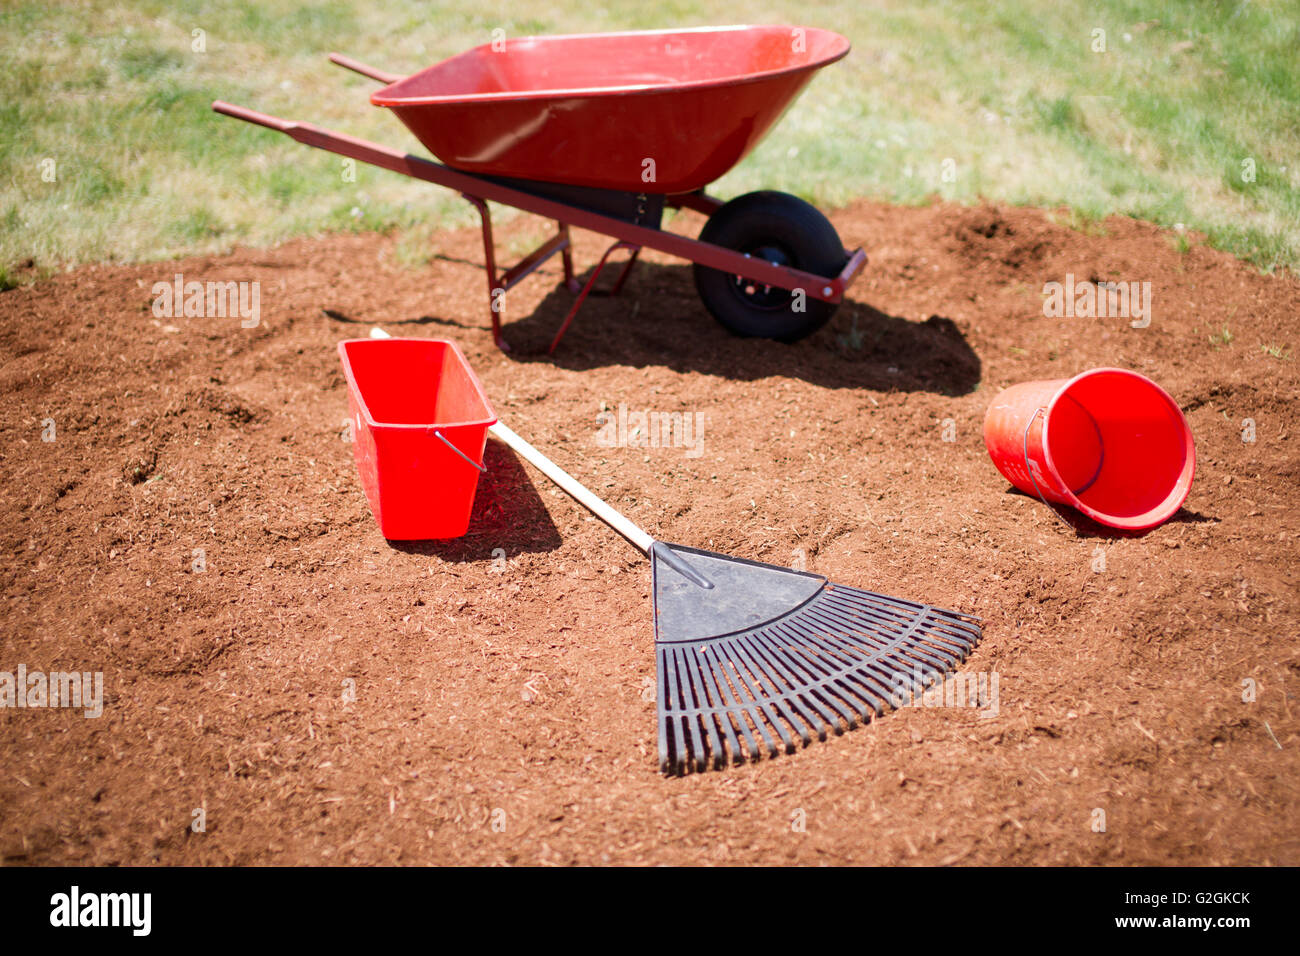 Wheelbarrow, Buckets and Rake on Pile of Mulch - Stock Image